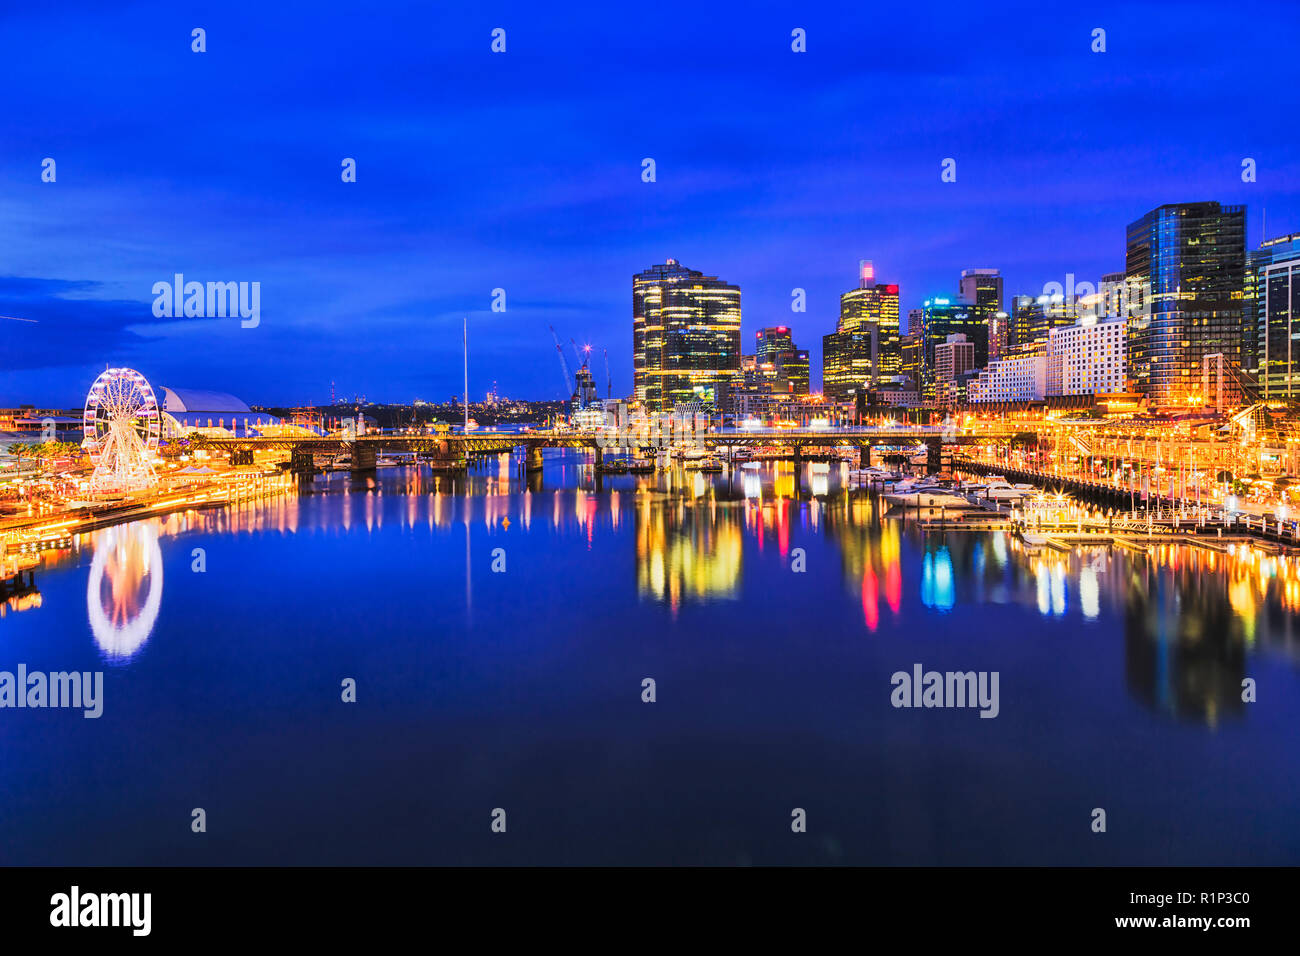 Blue dark sunset in Darling harbour entertainment district of Sydney CBD when bright illumination lights reflect in still waters of Cockle bay. - Stock Image